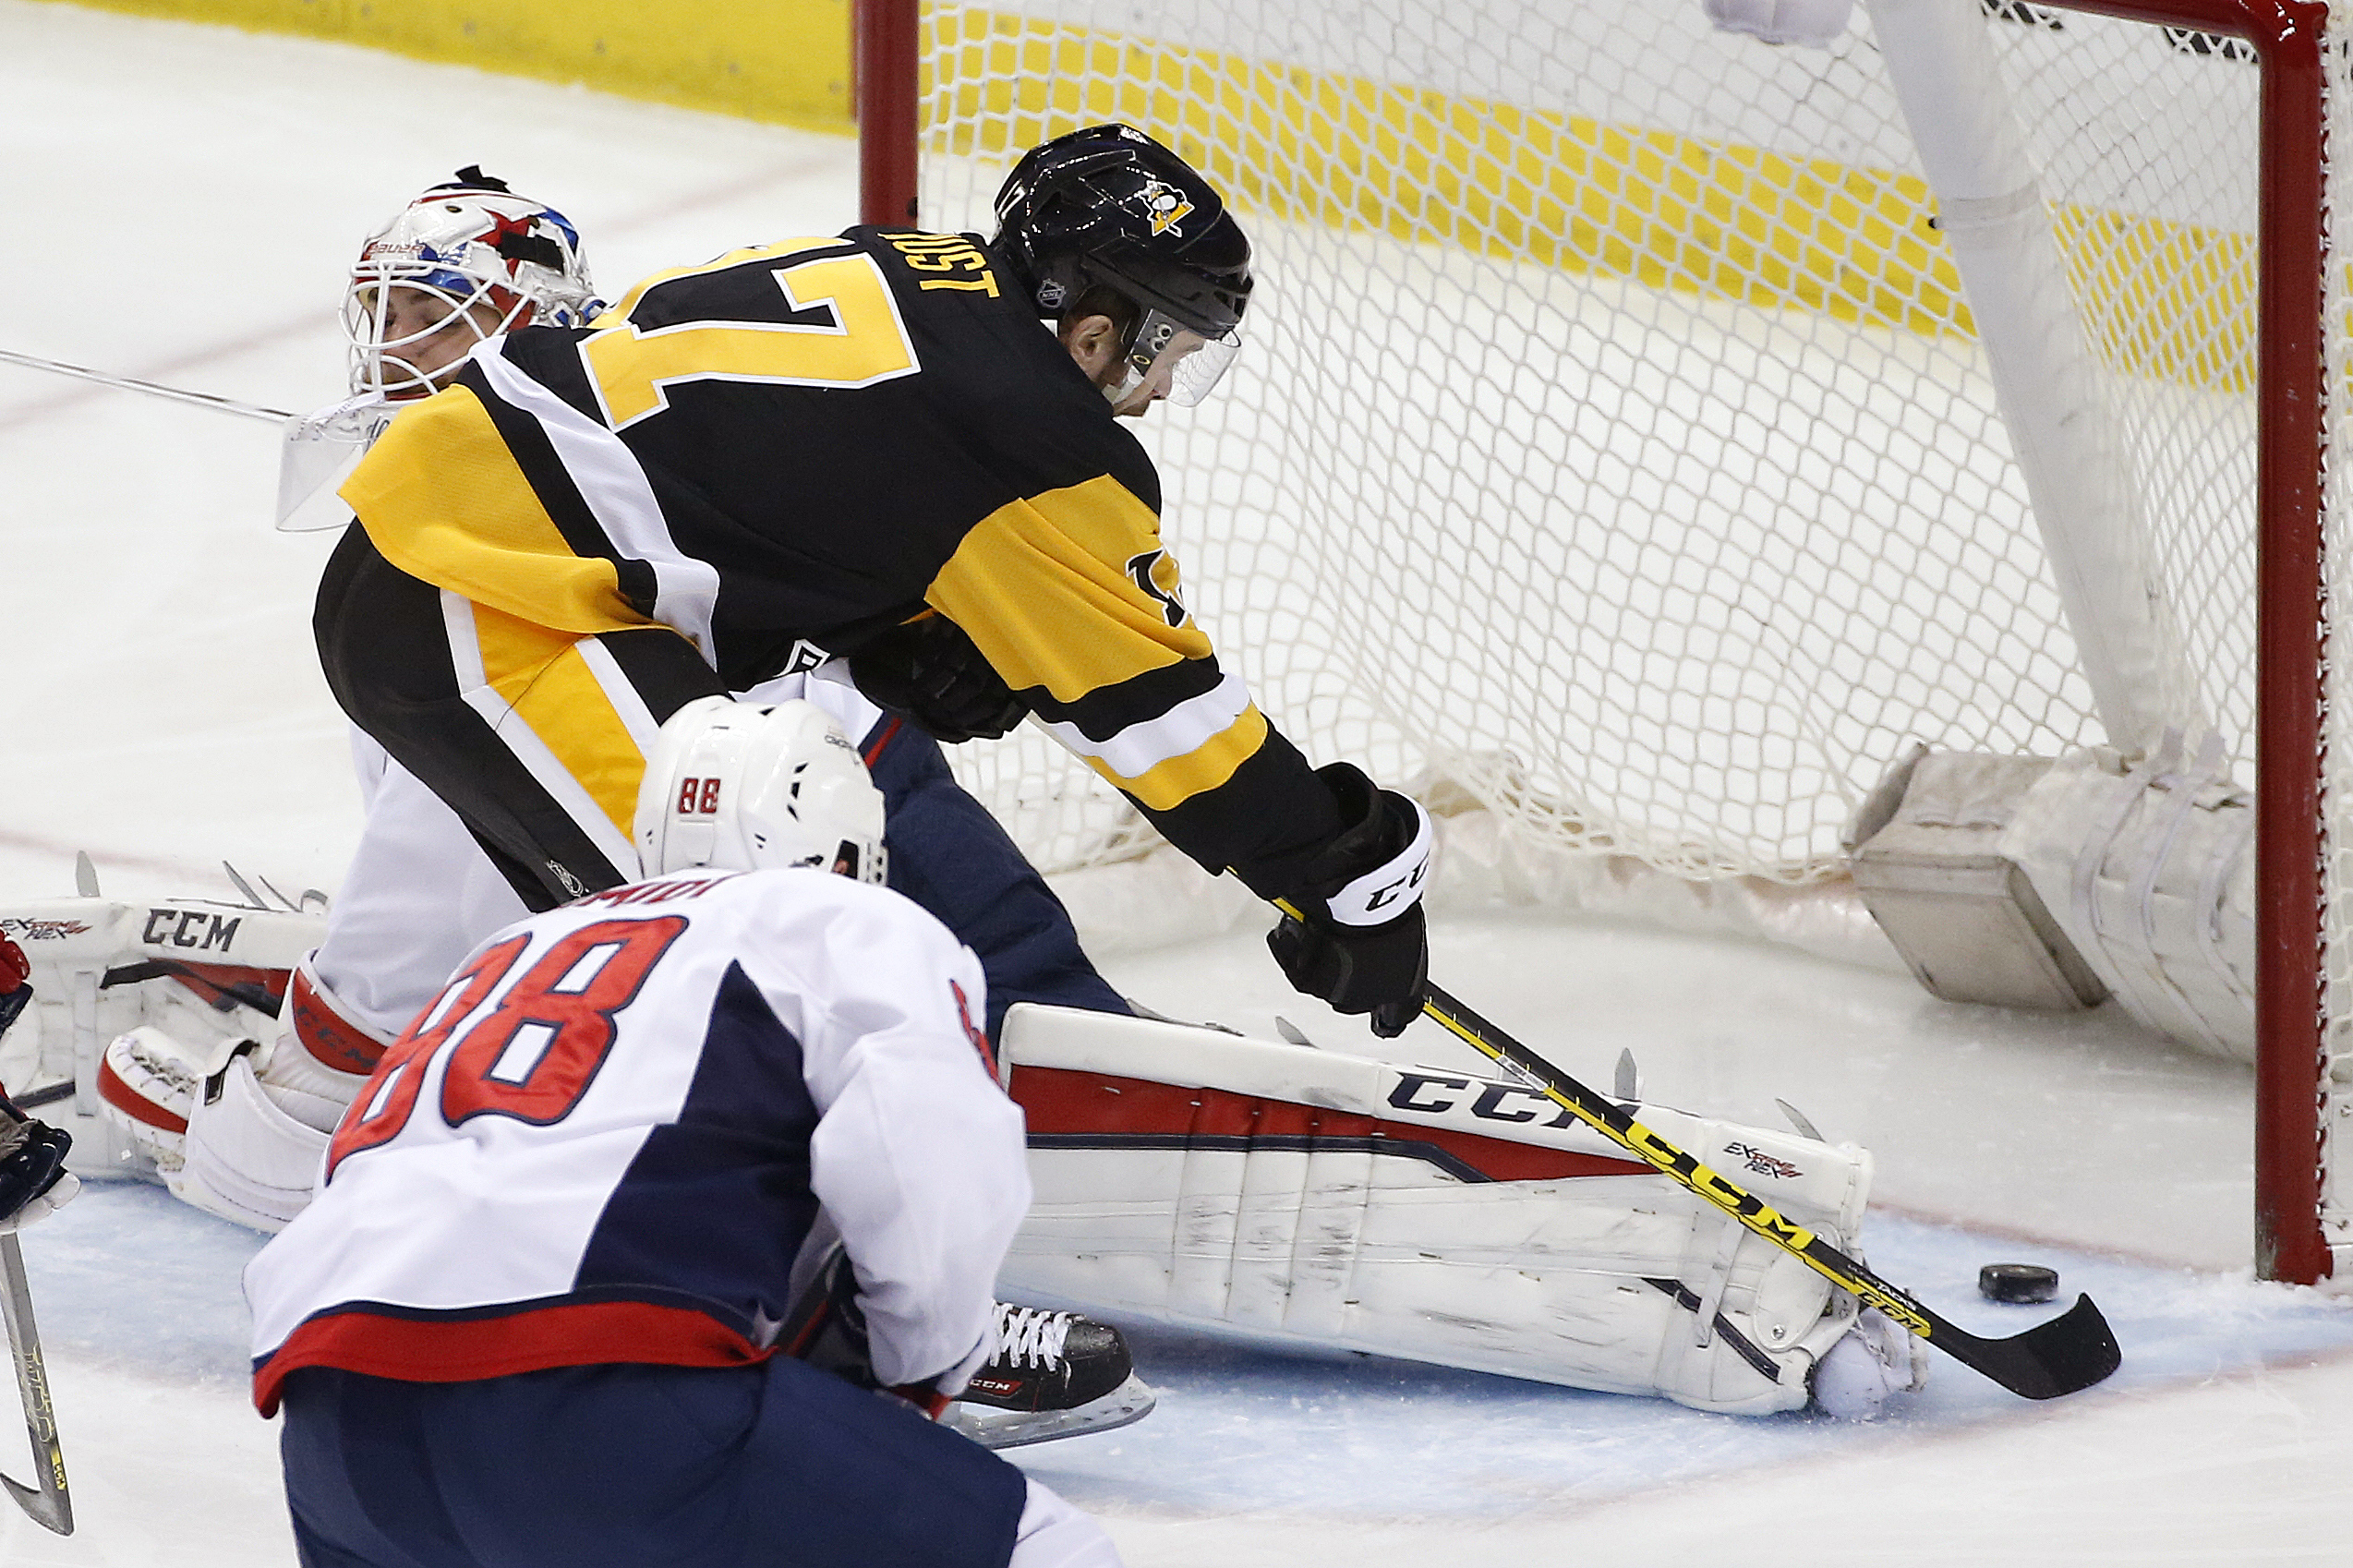 Pittsburgh Penguins' Bryan Rust (17) puts the puck behind Washington Capitals goalie Braden Holtby (70) for a goal during the first period of an NHL hockey game in Pittsburgh, Sunday, March 20, 2016. (AP Photo/Gene J. Puskar)